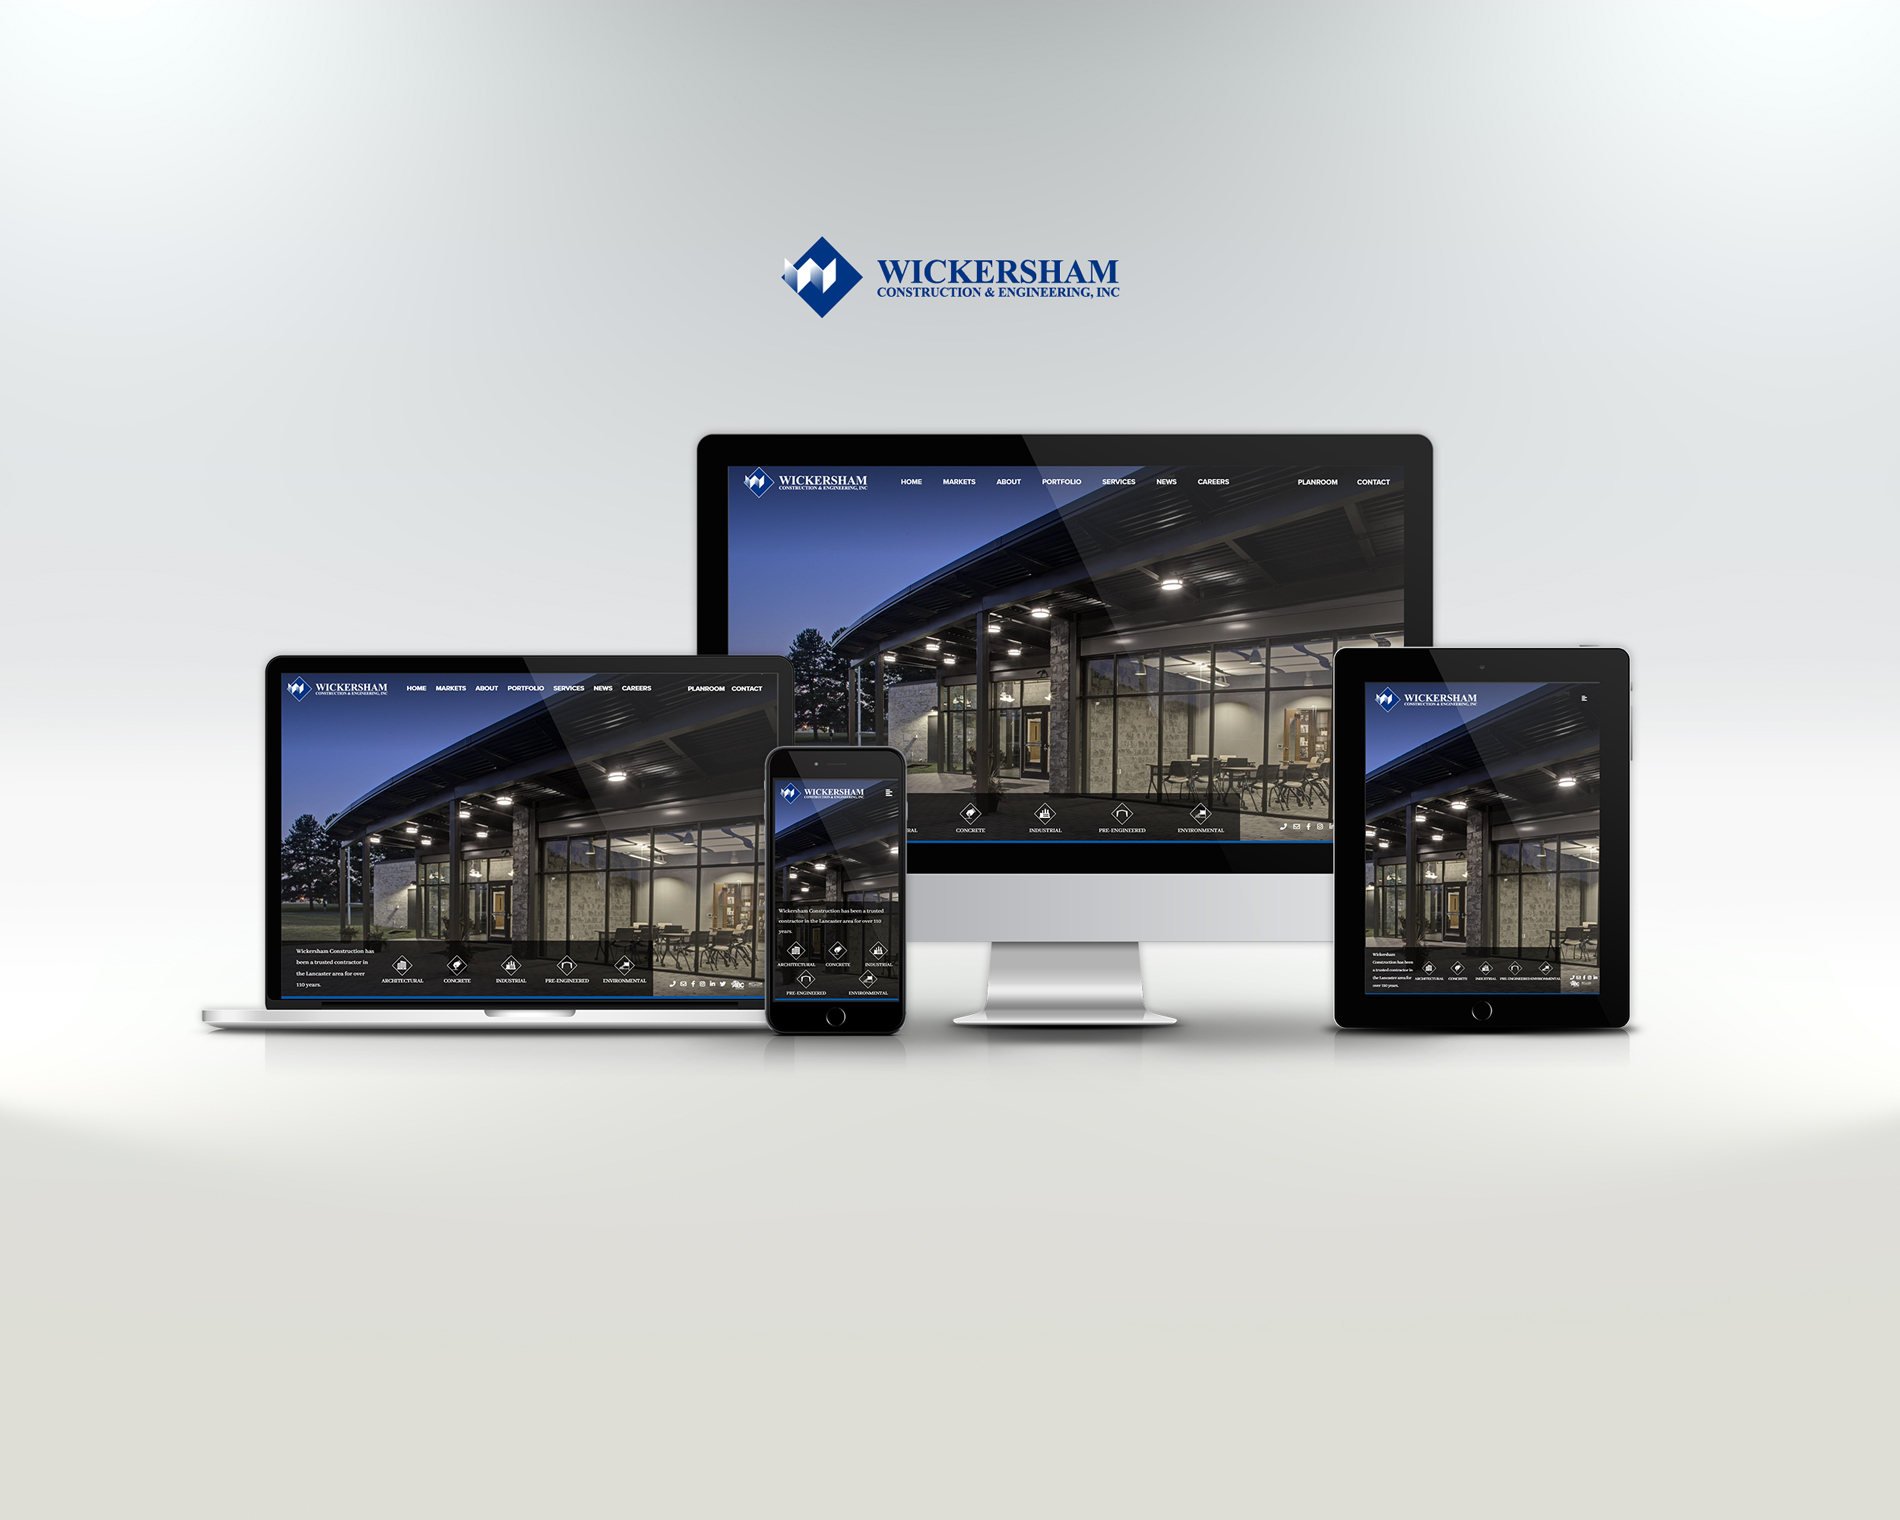 wickersham construction website displayed on laptop, tablet, and phone